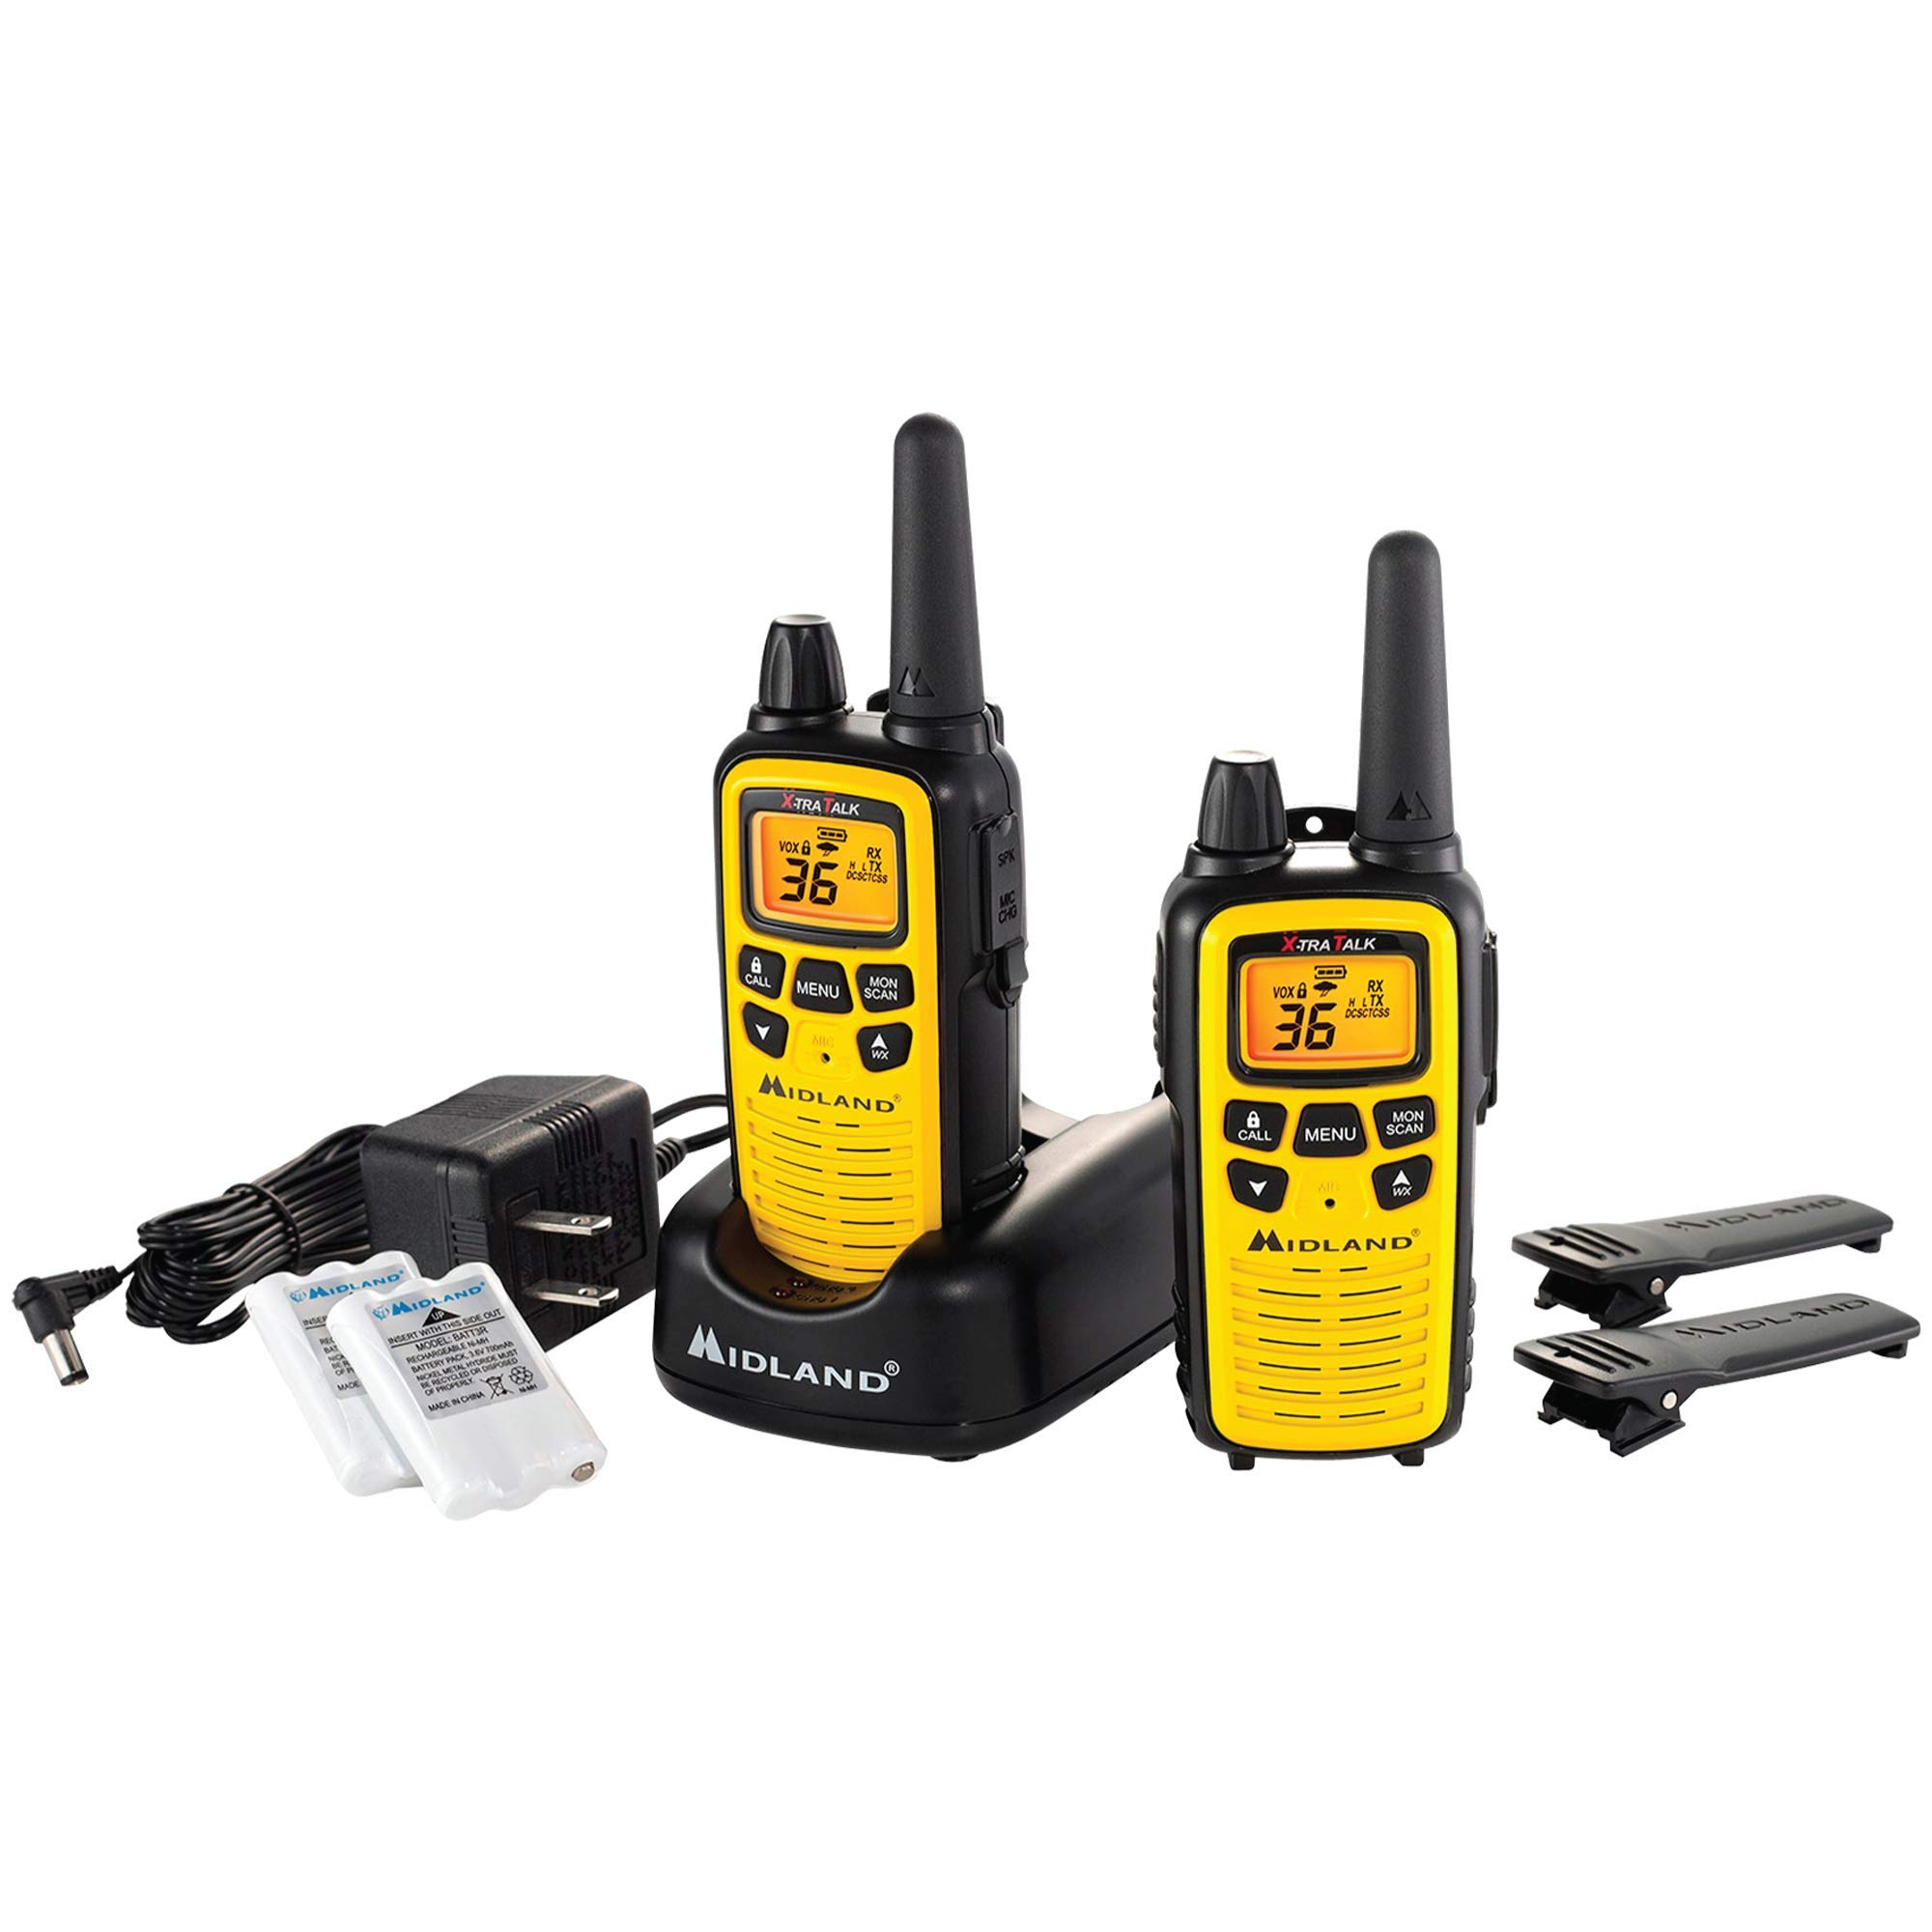 Midland - LXT630VP3, 36 Channel FRS Two-Way Radio - Up to 30 Mile Range Walkie Talkie, 121 Privacy Codes, NOAA Weather Scan + Alert (Pair Pack) (Yellow/Black) by Midland